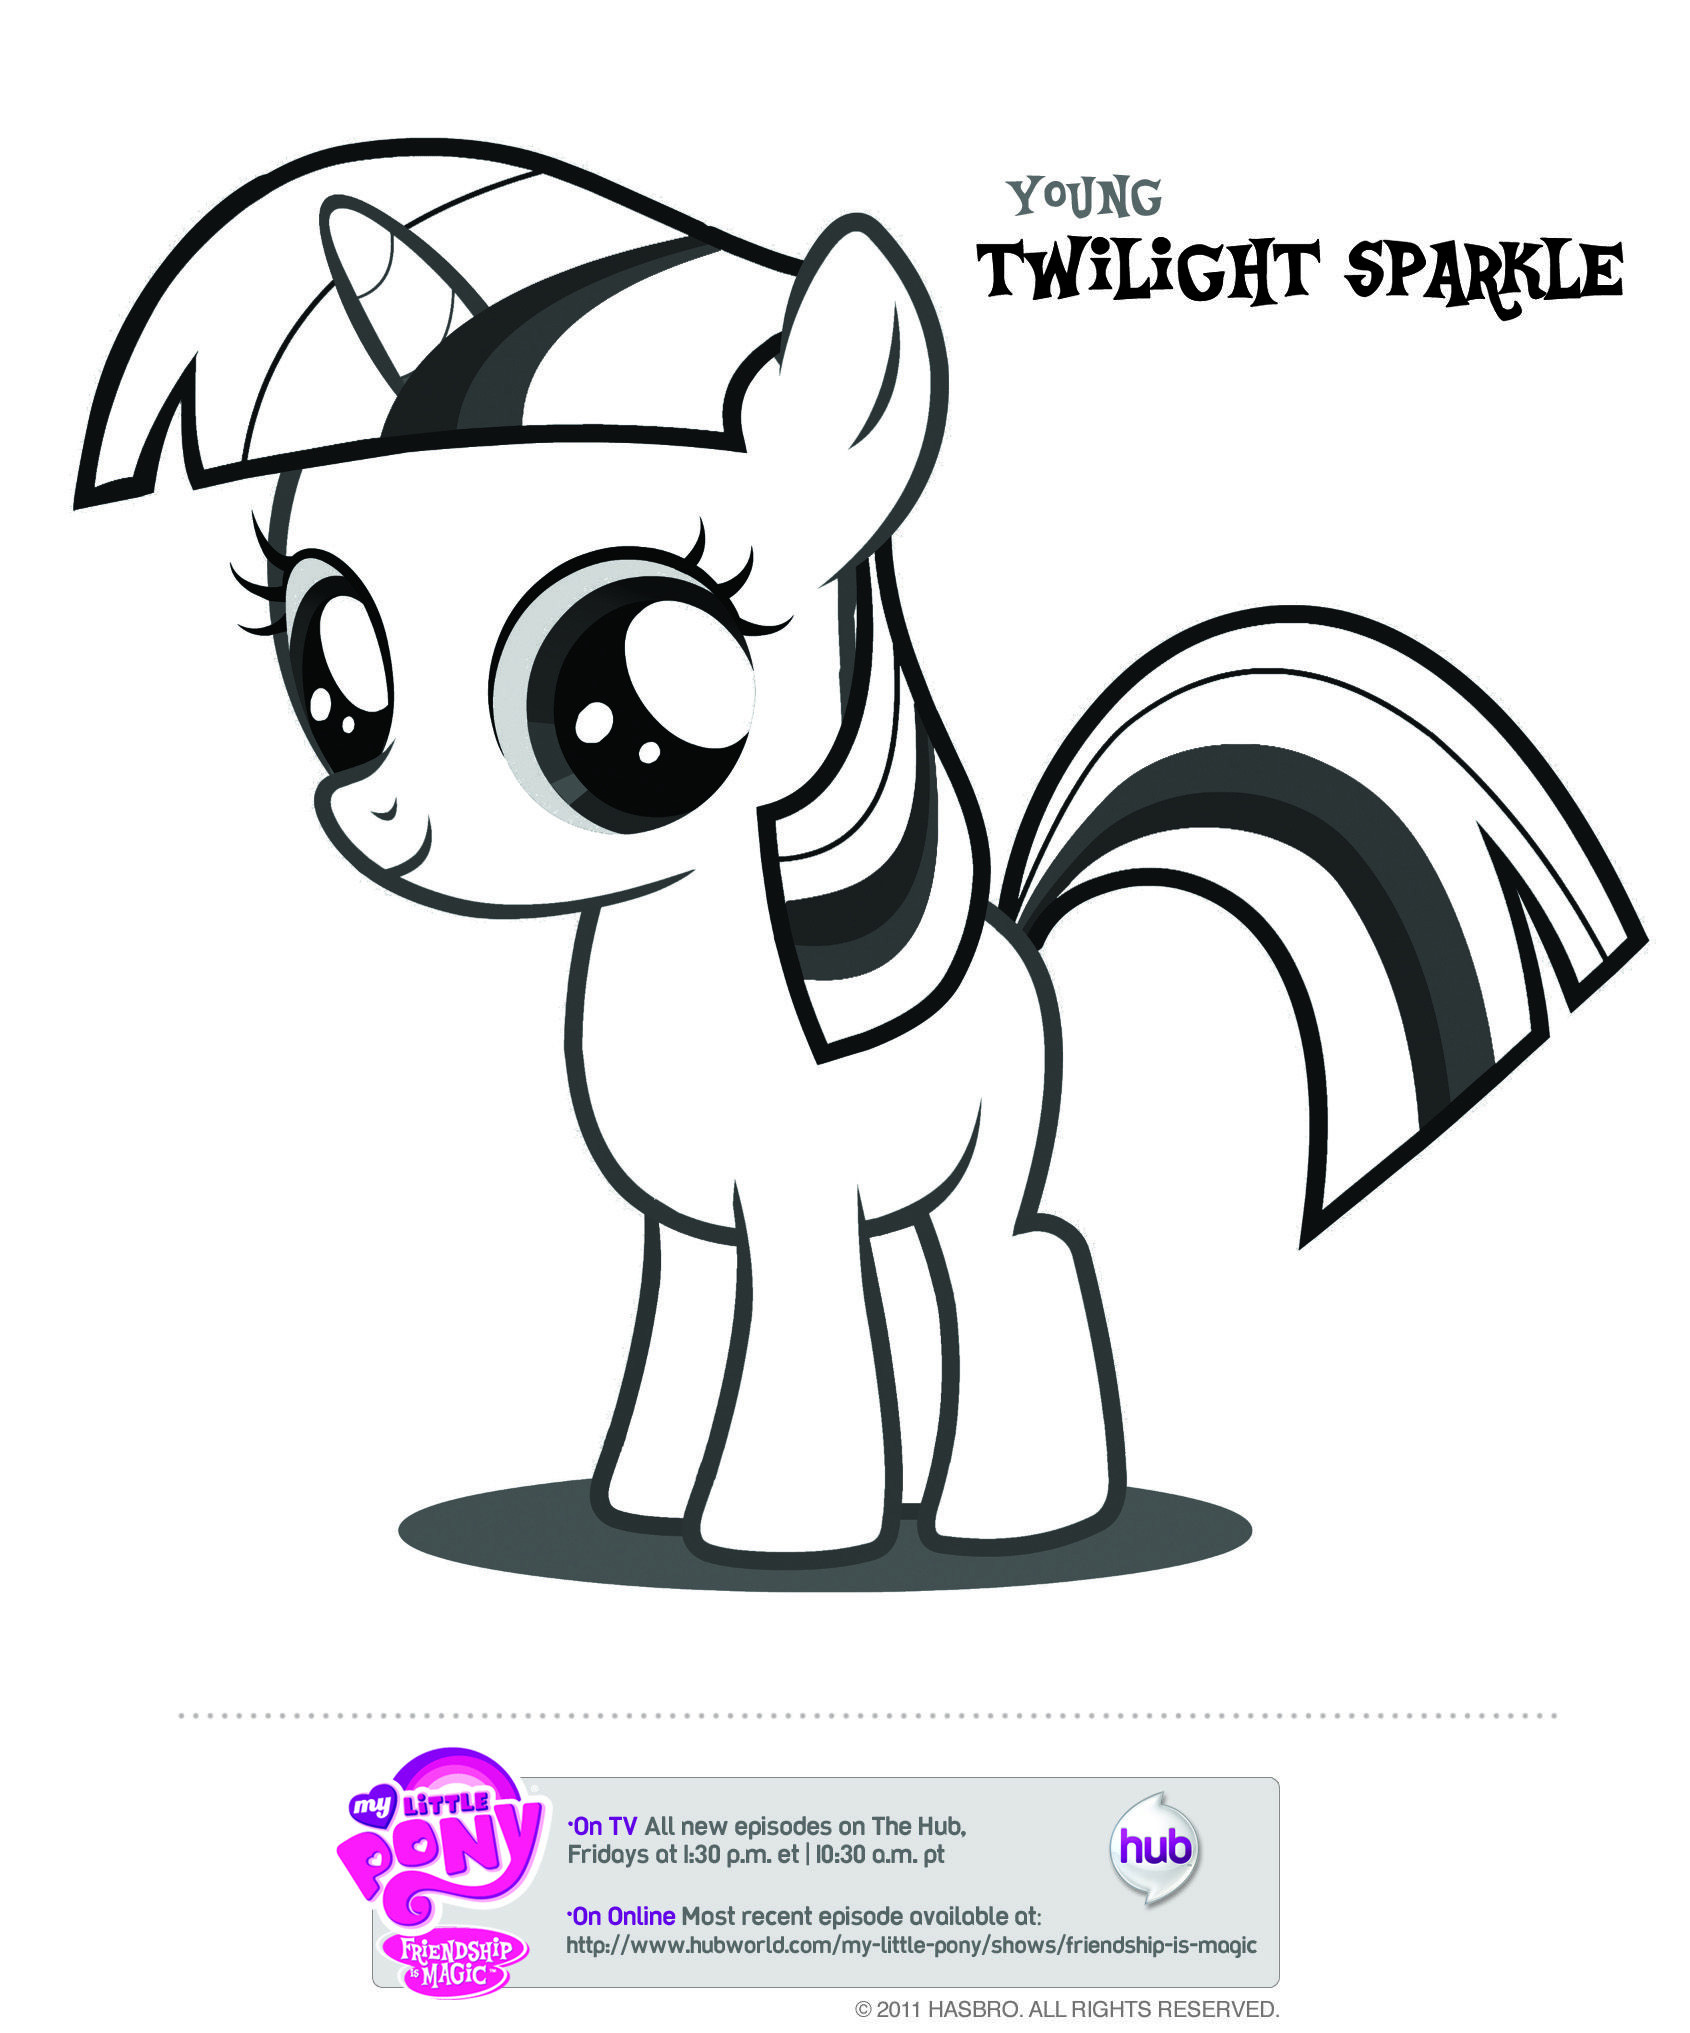 My Little Pony Ausmalbilder Kostenlos Einzigartig My Little Pony Downloadable and Printable Coloring Pages From the Galerie